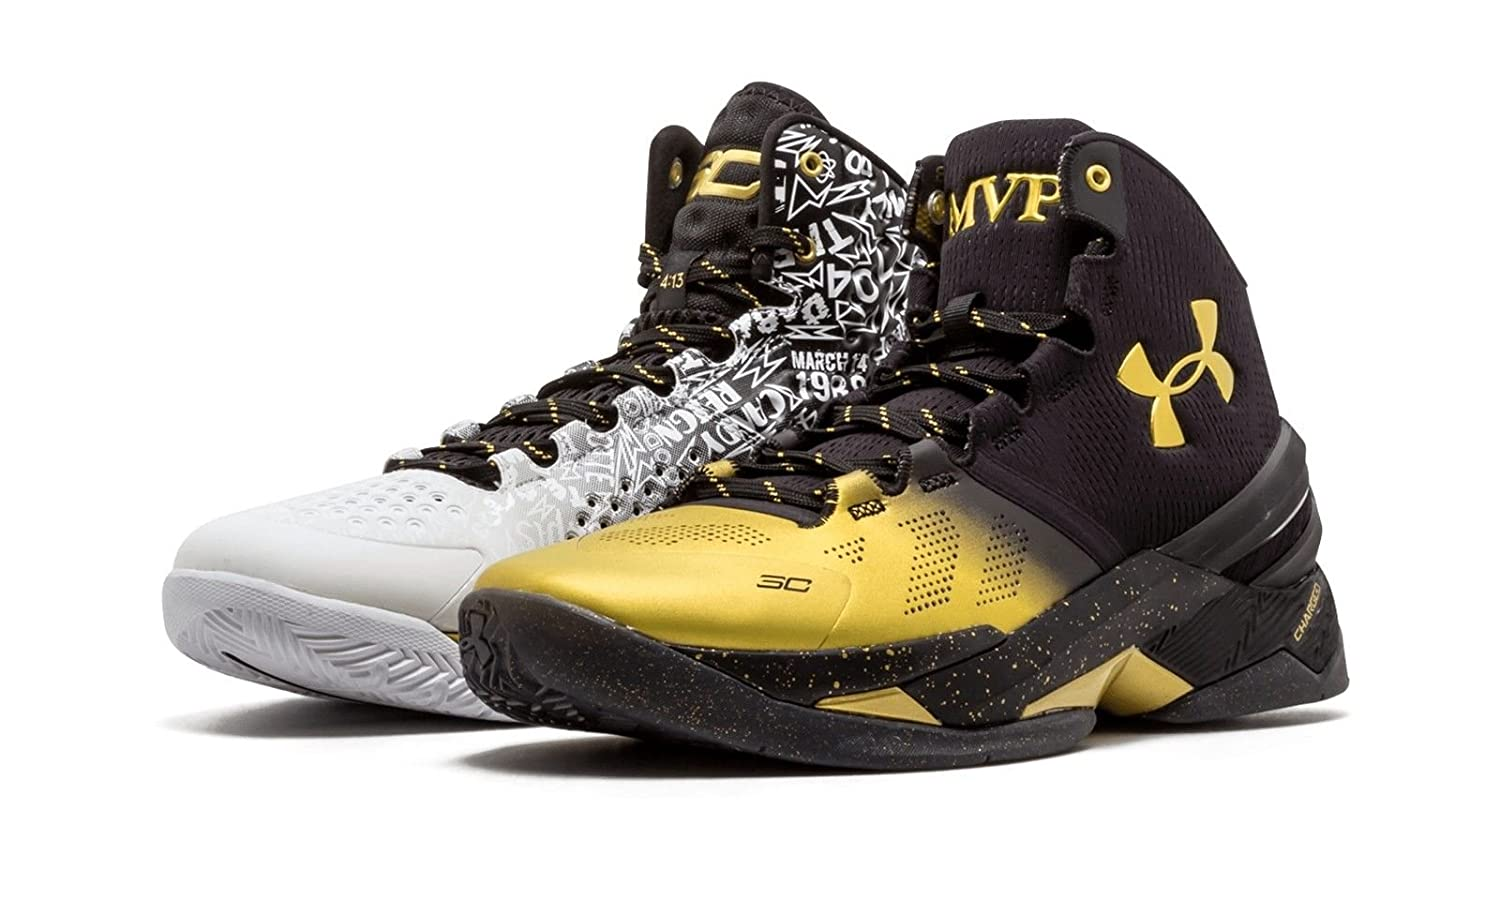 best sneakers 55336 ef793 Under Armour Stephen Curry Back 2 Back MVP Pack 1300015-001 US Size 11.5   Amazon.co.uk  Shoes   Bags